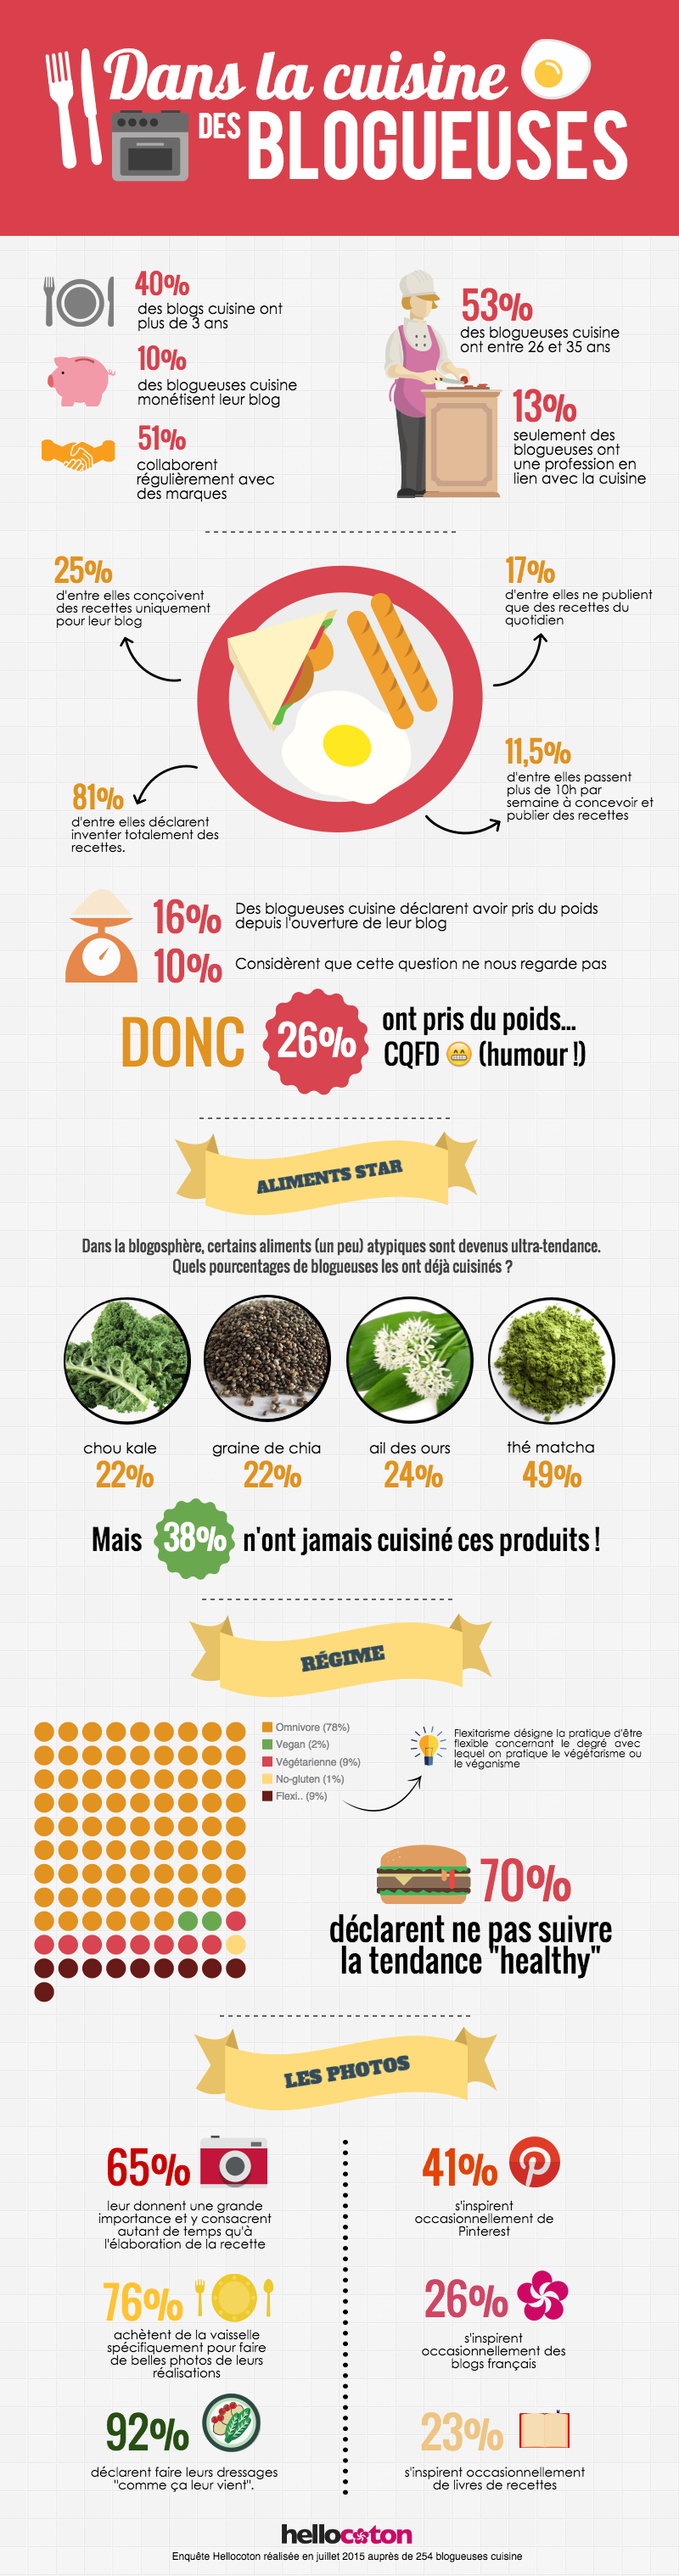 infographie-blogueuses-cuisine